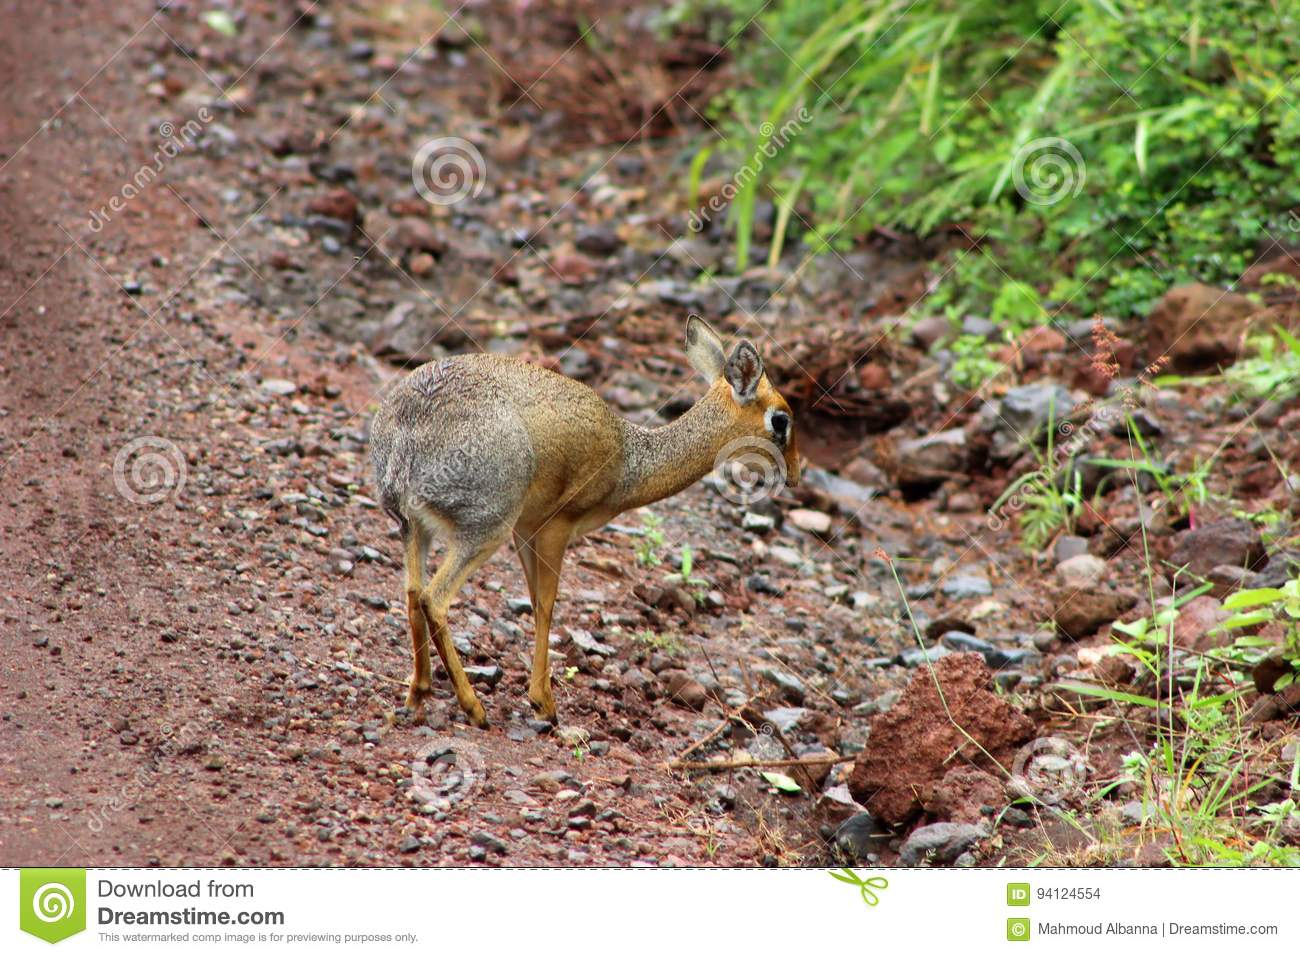 58f568c30 Though they look like miniature deer, dik-diks are small antelopes that  never get bigger than 30 to 40 cm. When sensing danger, the female warns  other game ...